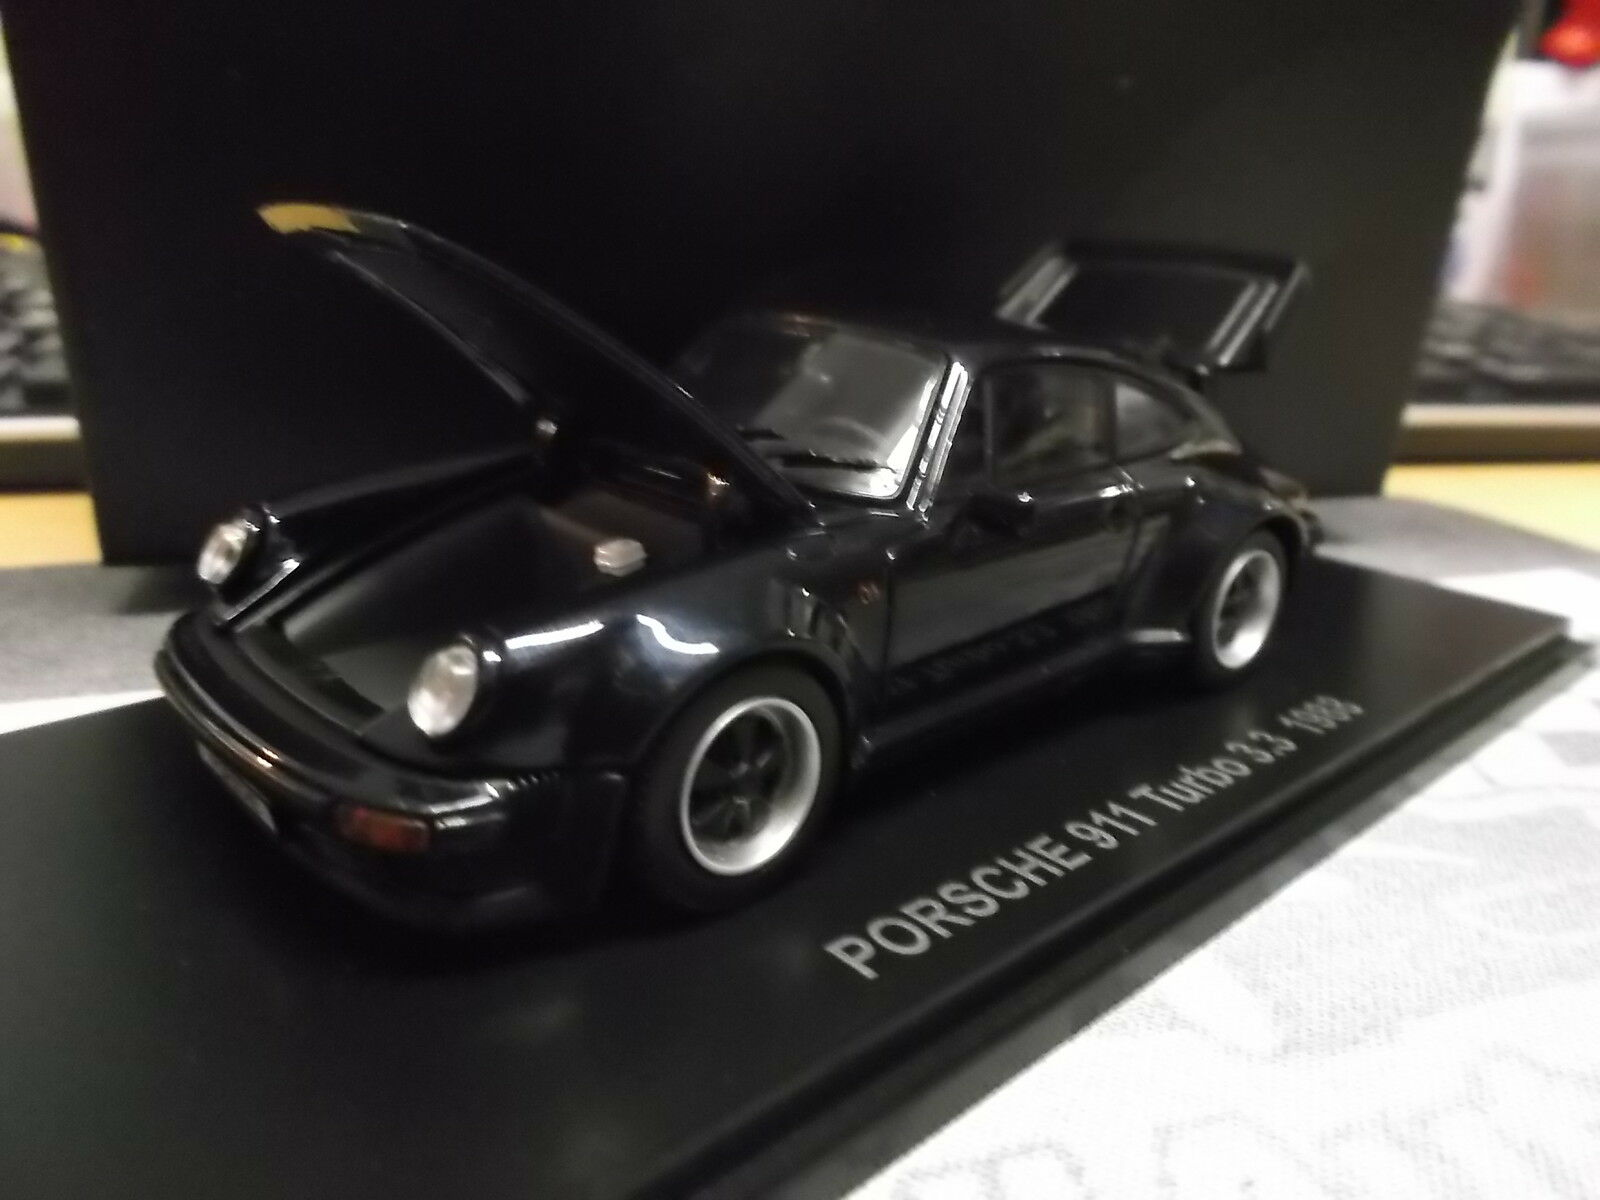 PORSCHE 911 Turbo 3.3 Blau dark blau G-Modell 930 Coupe Kyosho limited 1 43